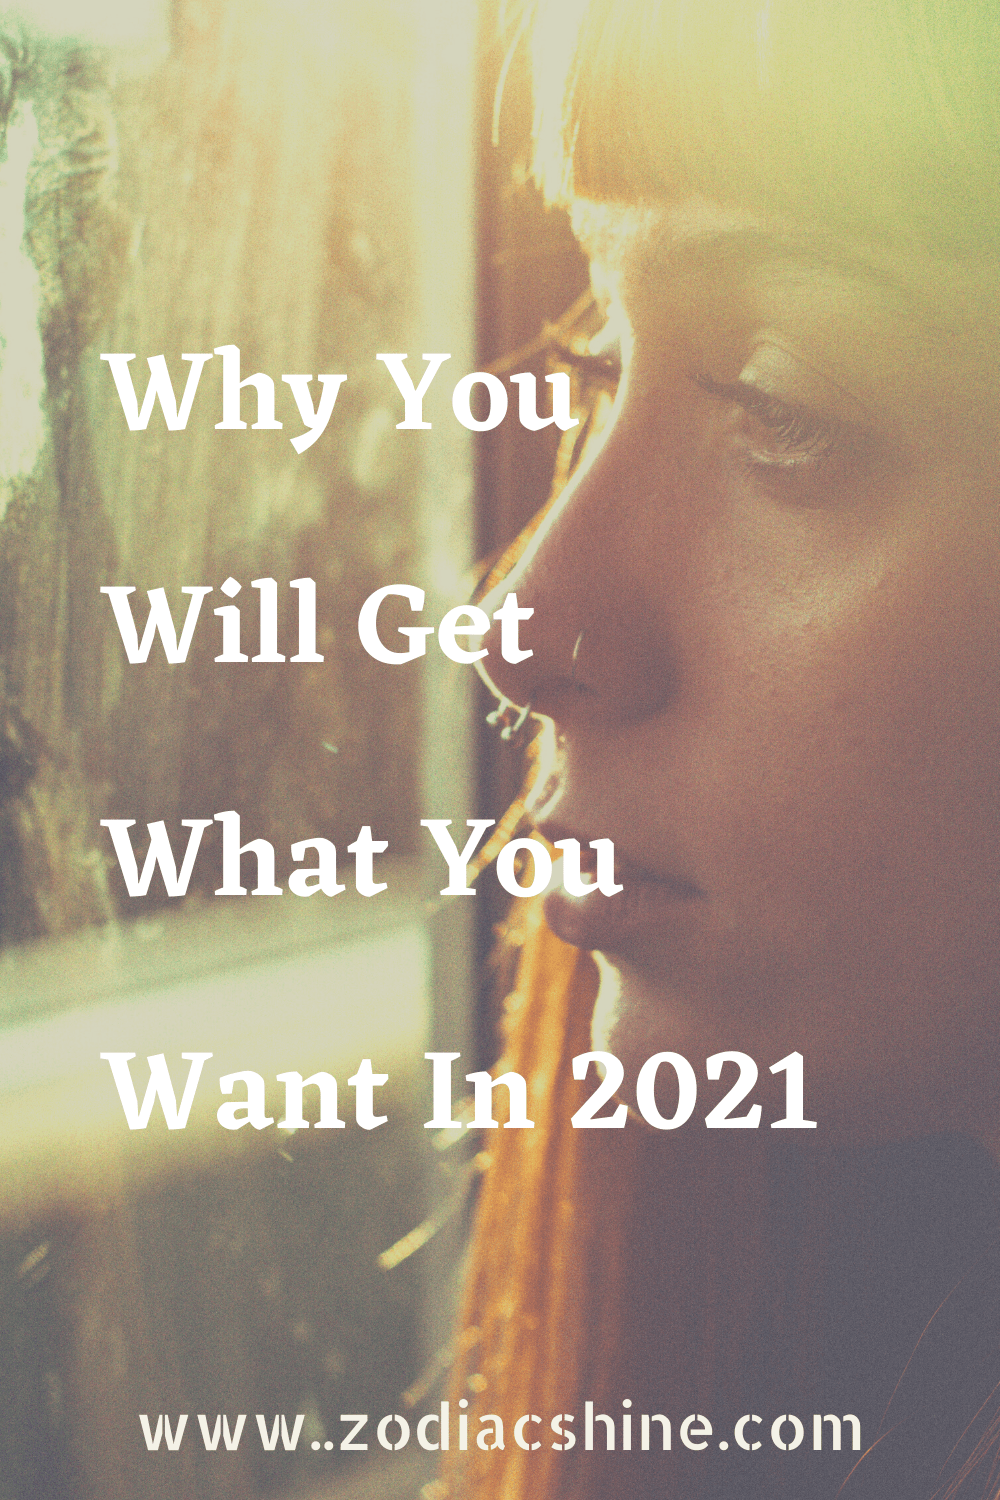 Why You Will Get What You Want In 2021